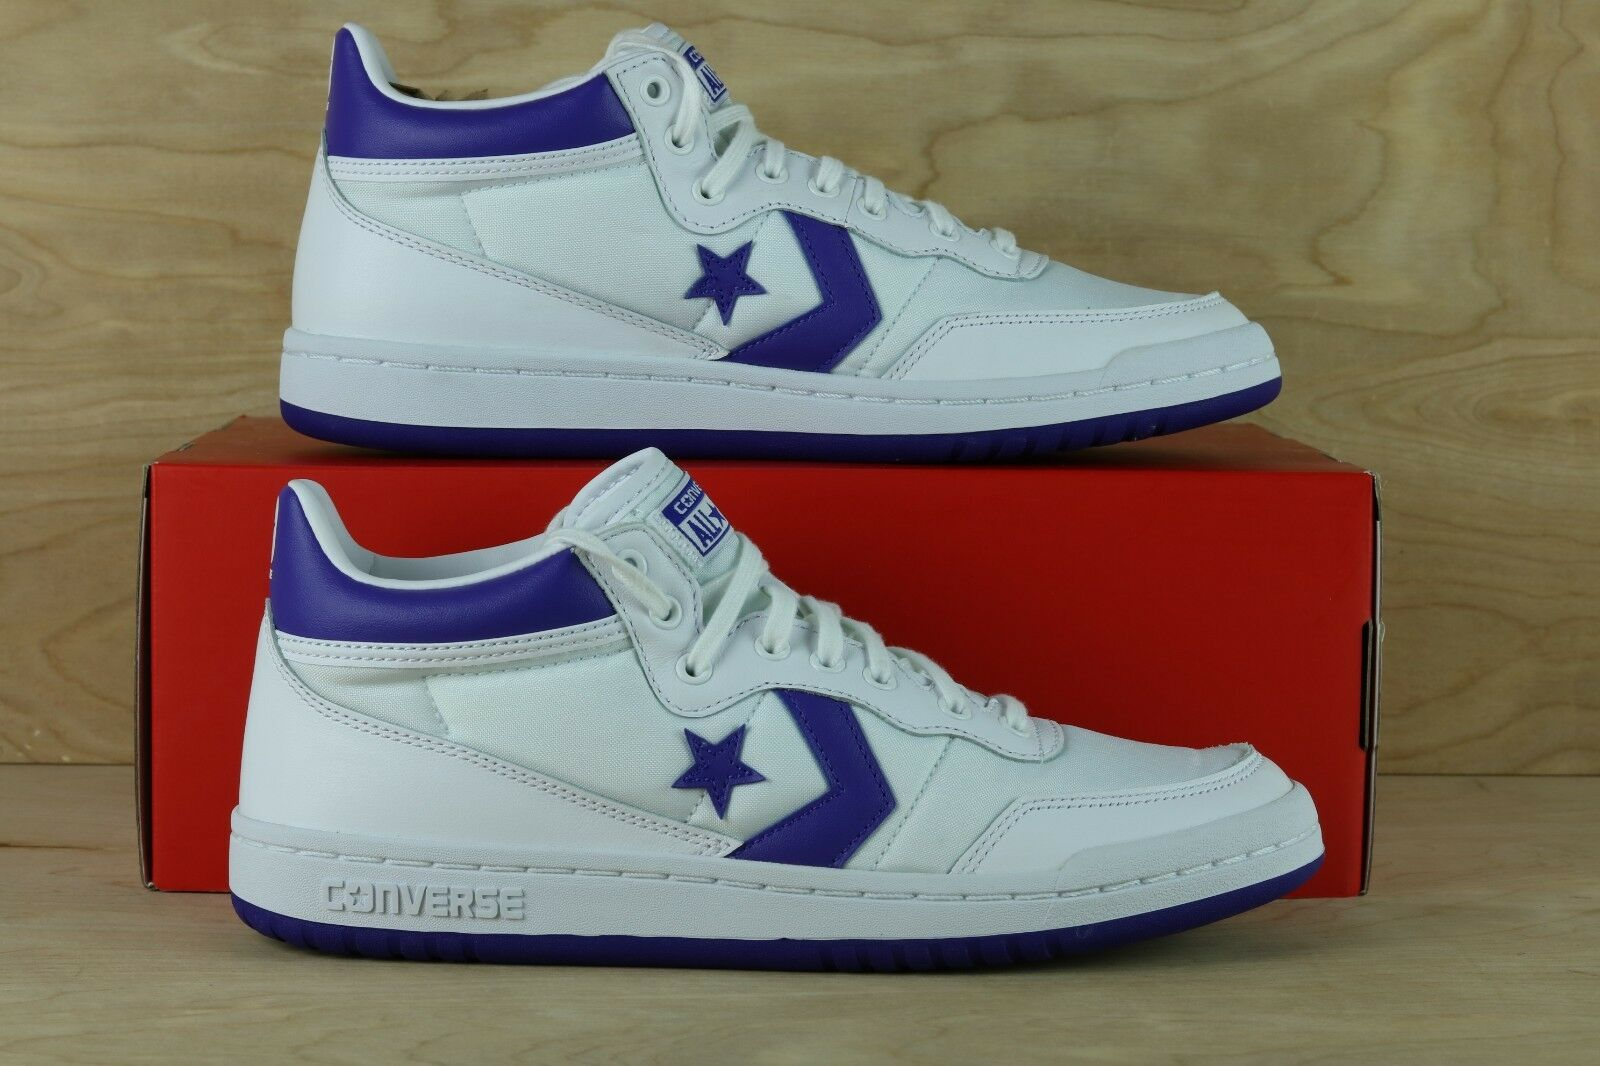 CONVERSE FASTBREAK 83 MID WHITE /CANDY GRAPE Uomo SNEAKERS 156972C [ Multi Size ]